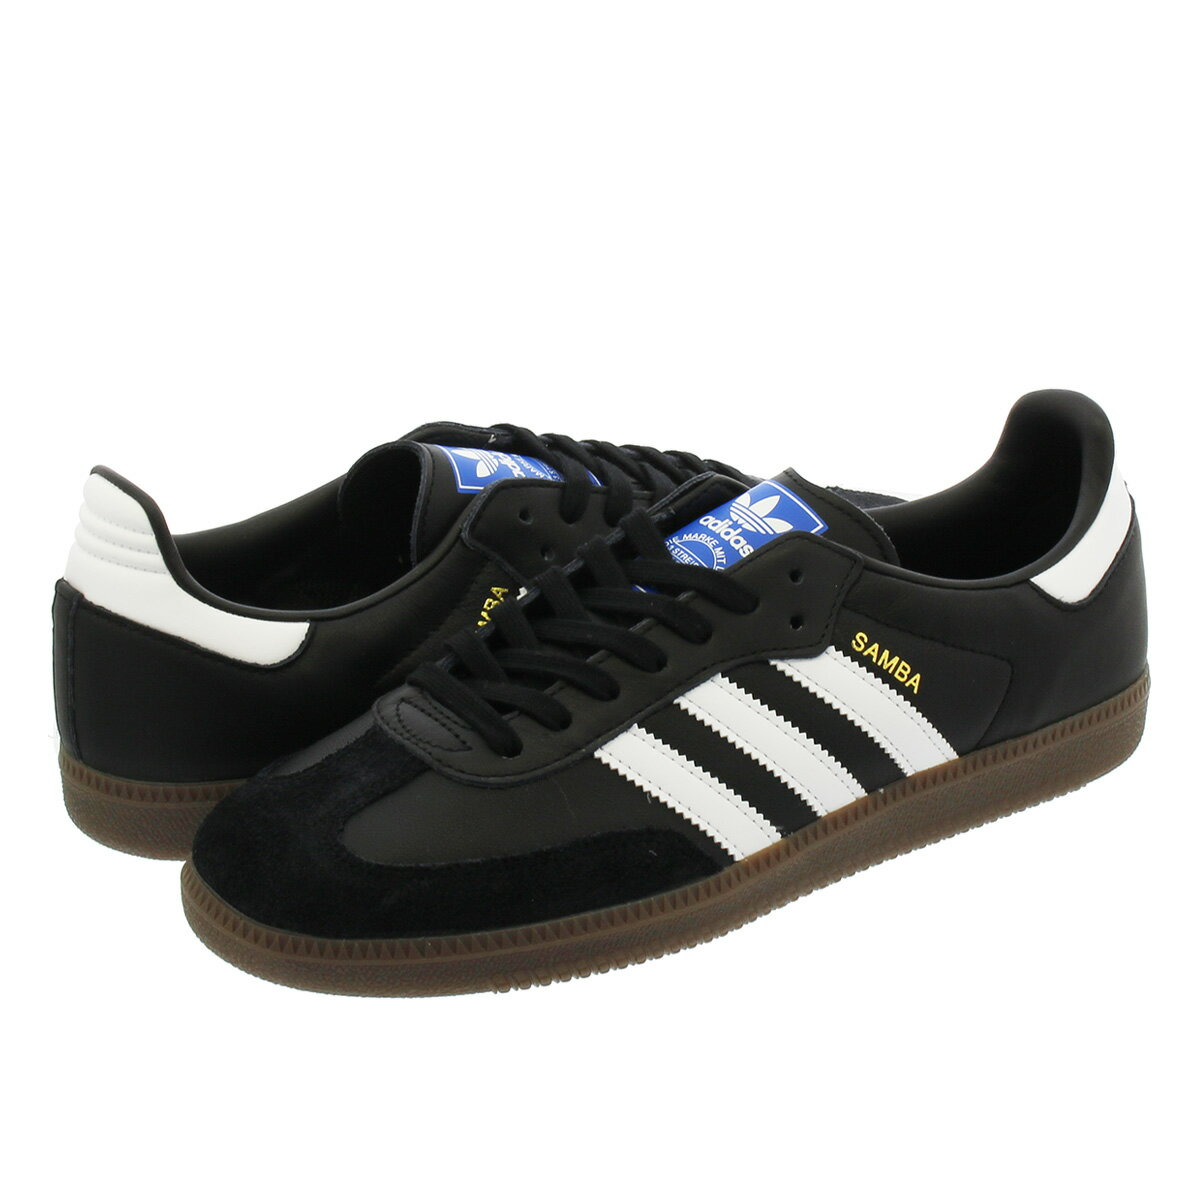 Samba Adidas. Summary With Samba Adidas. Adidas X Pleasures